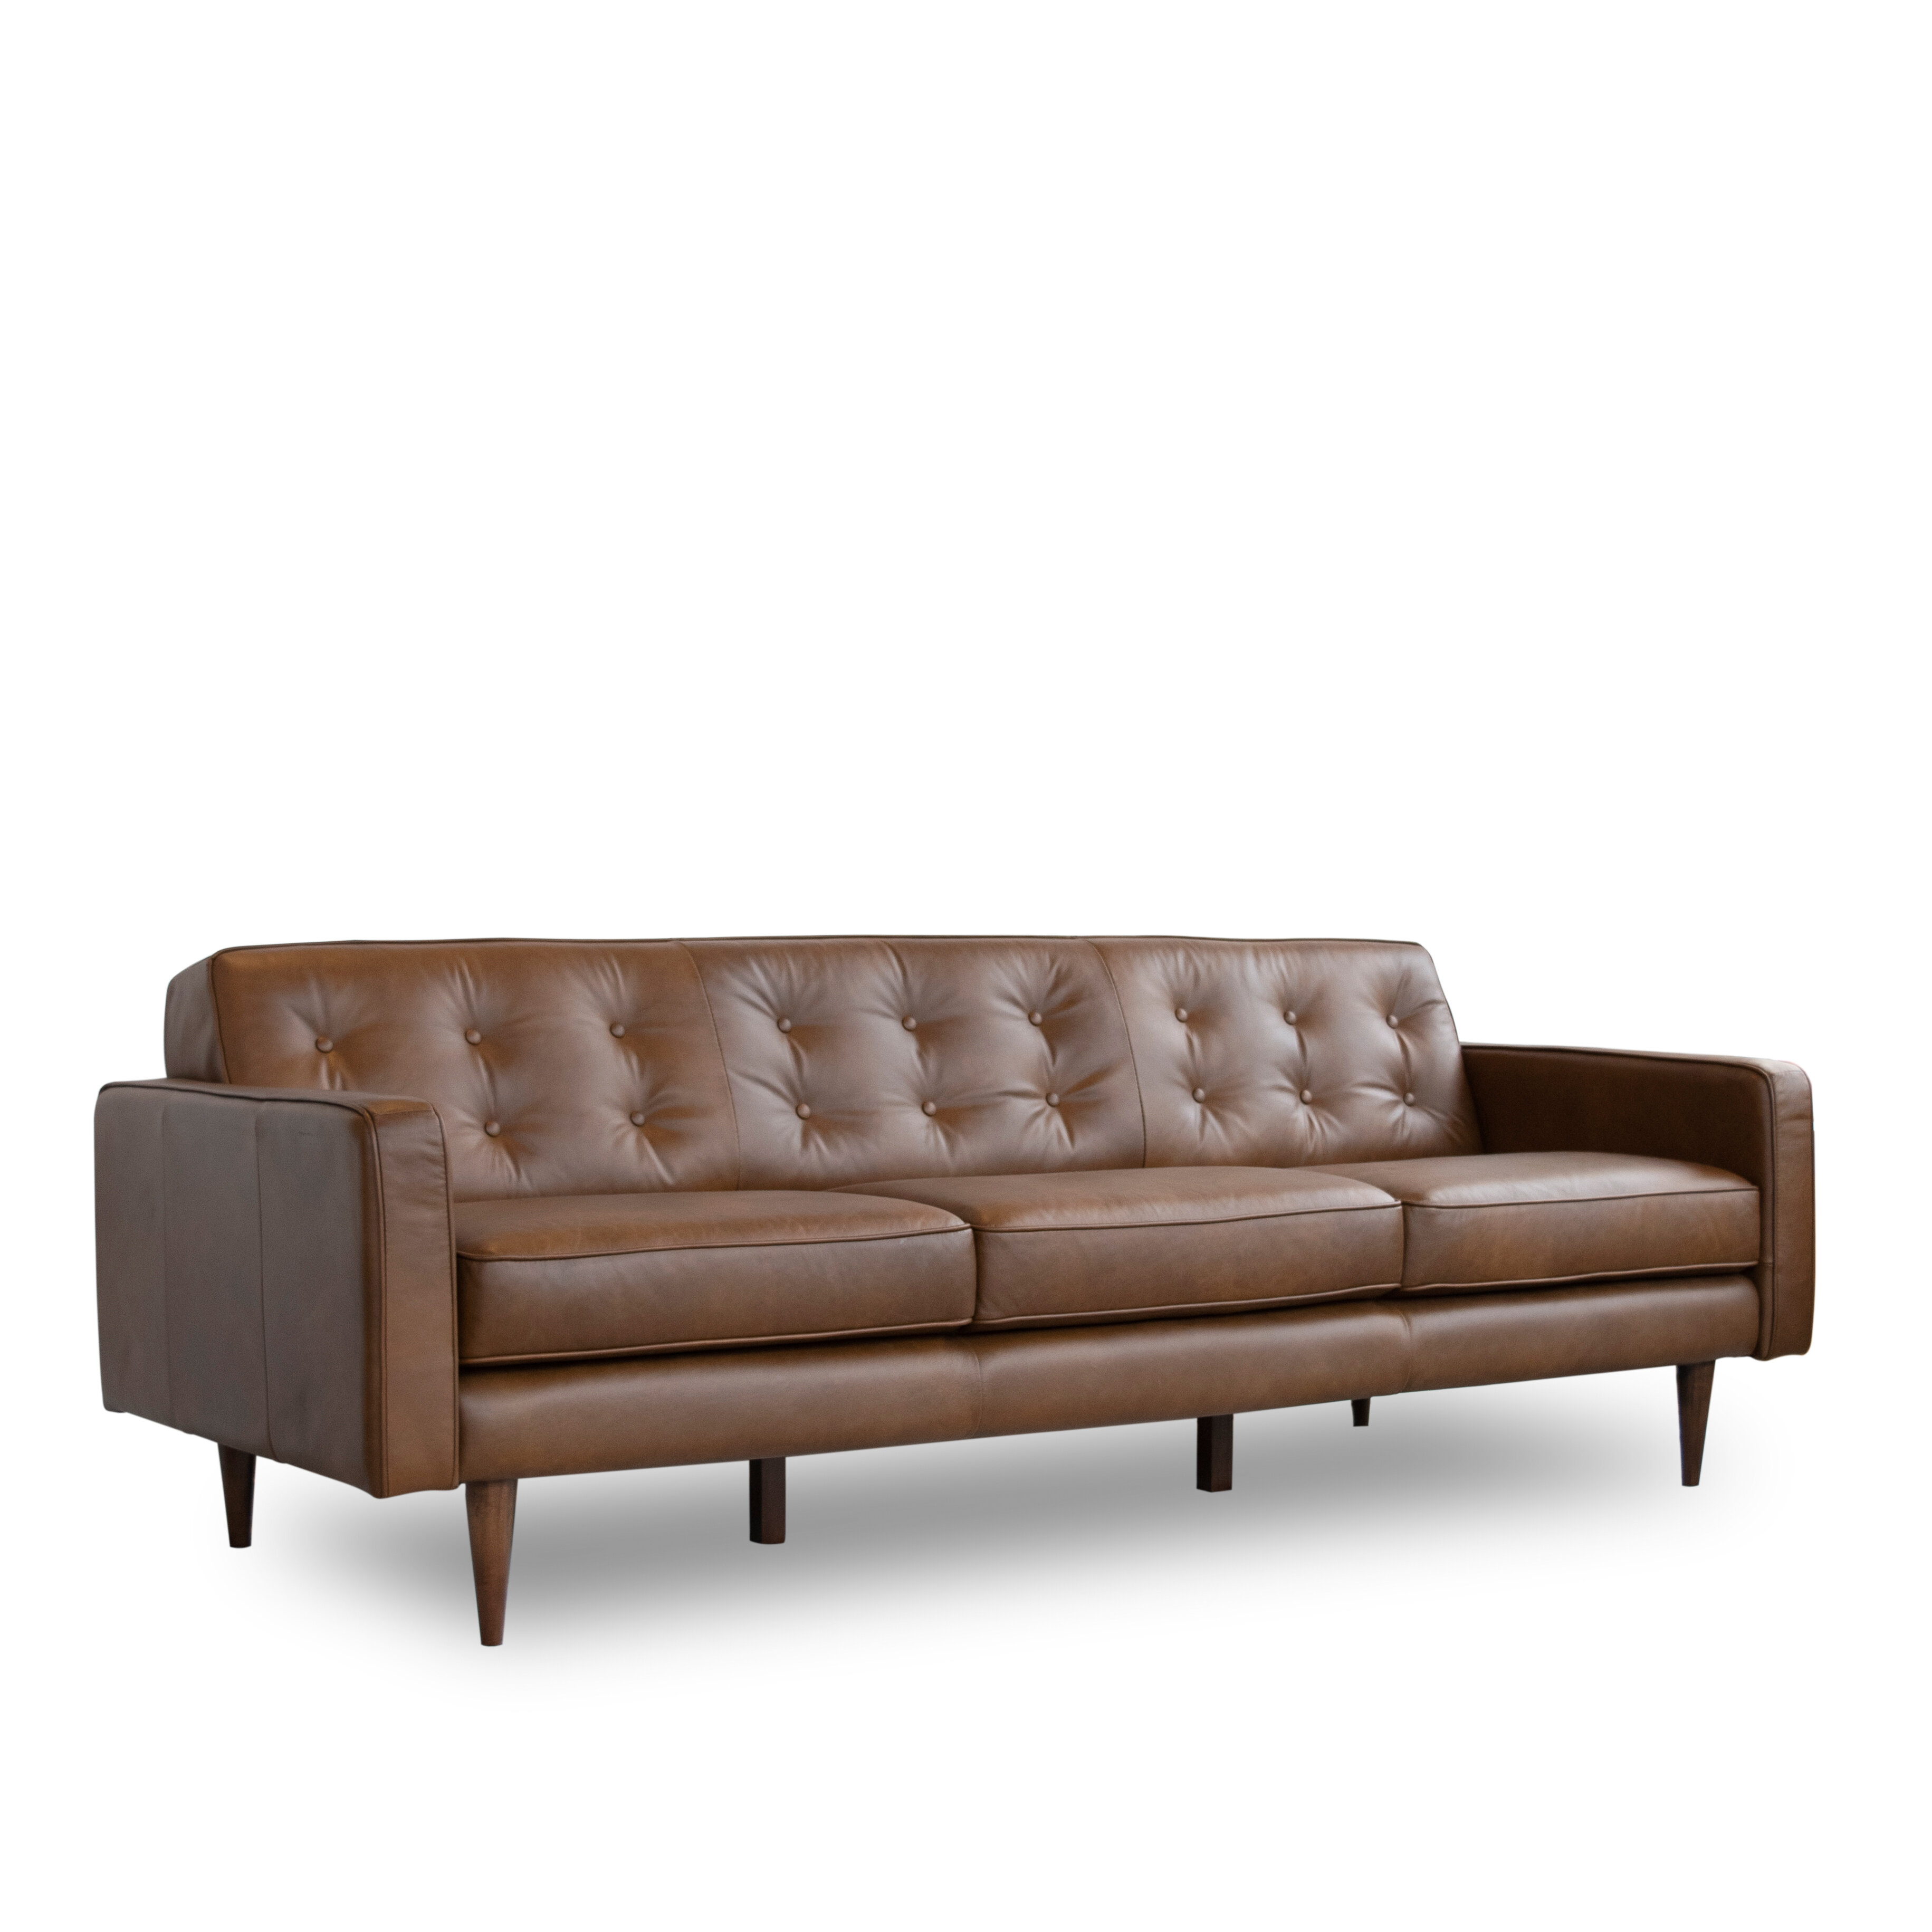 Cool Louane Mid Century Modern Leather Sofa Gmtry Best Dining Table And Chair Ideas Images Gmtryco